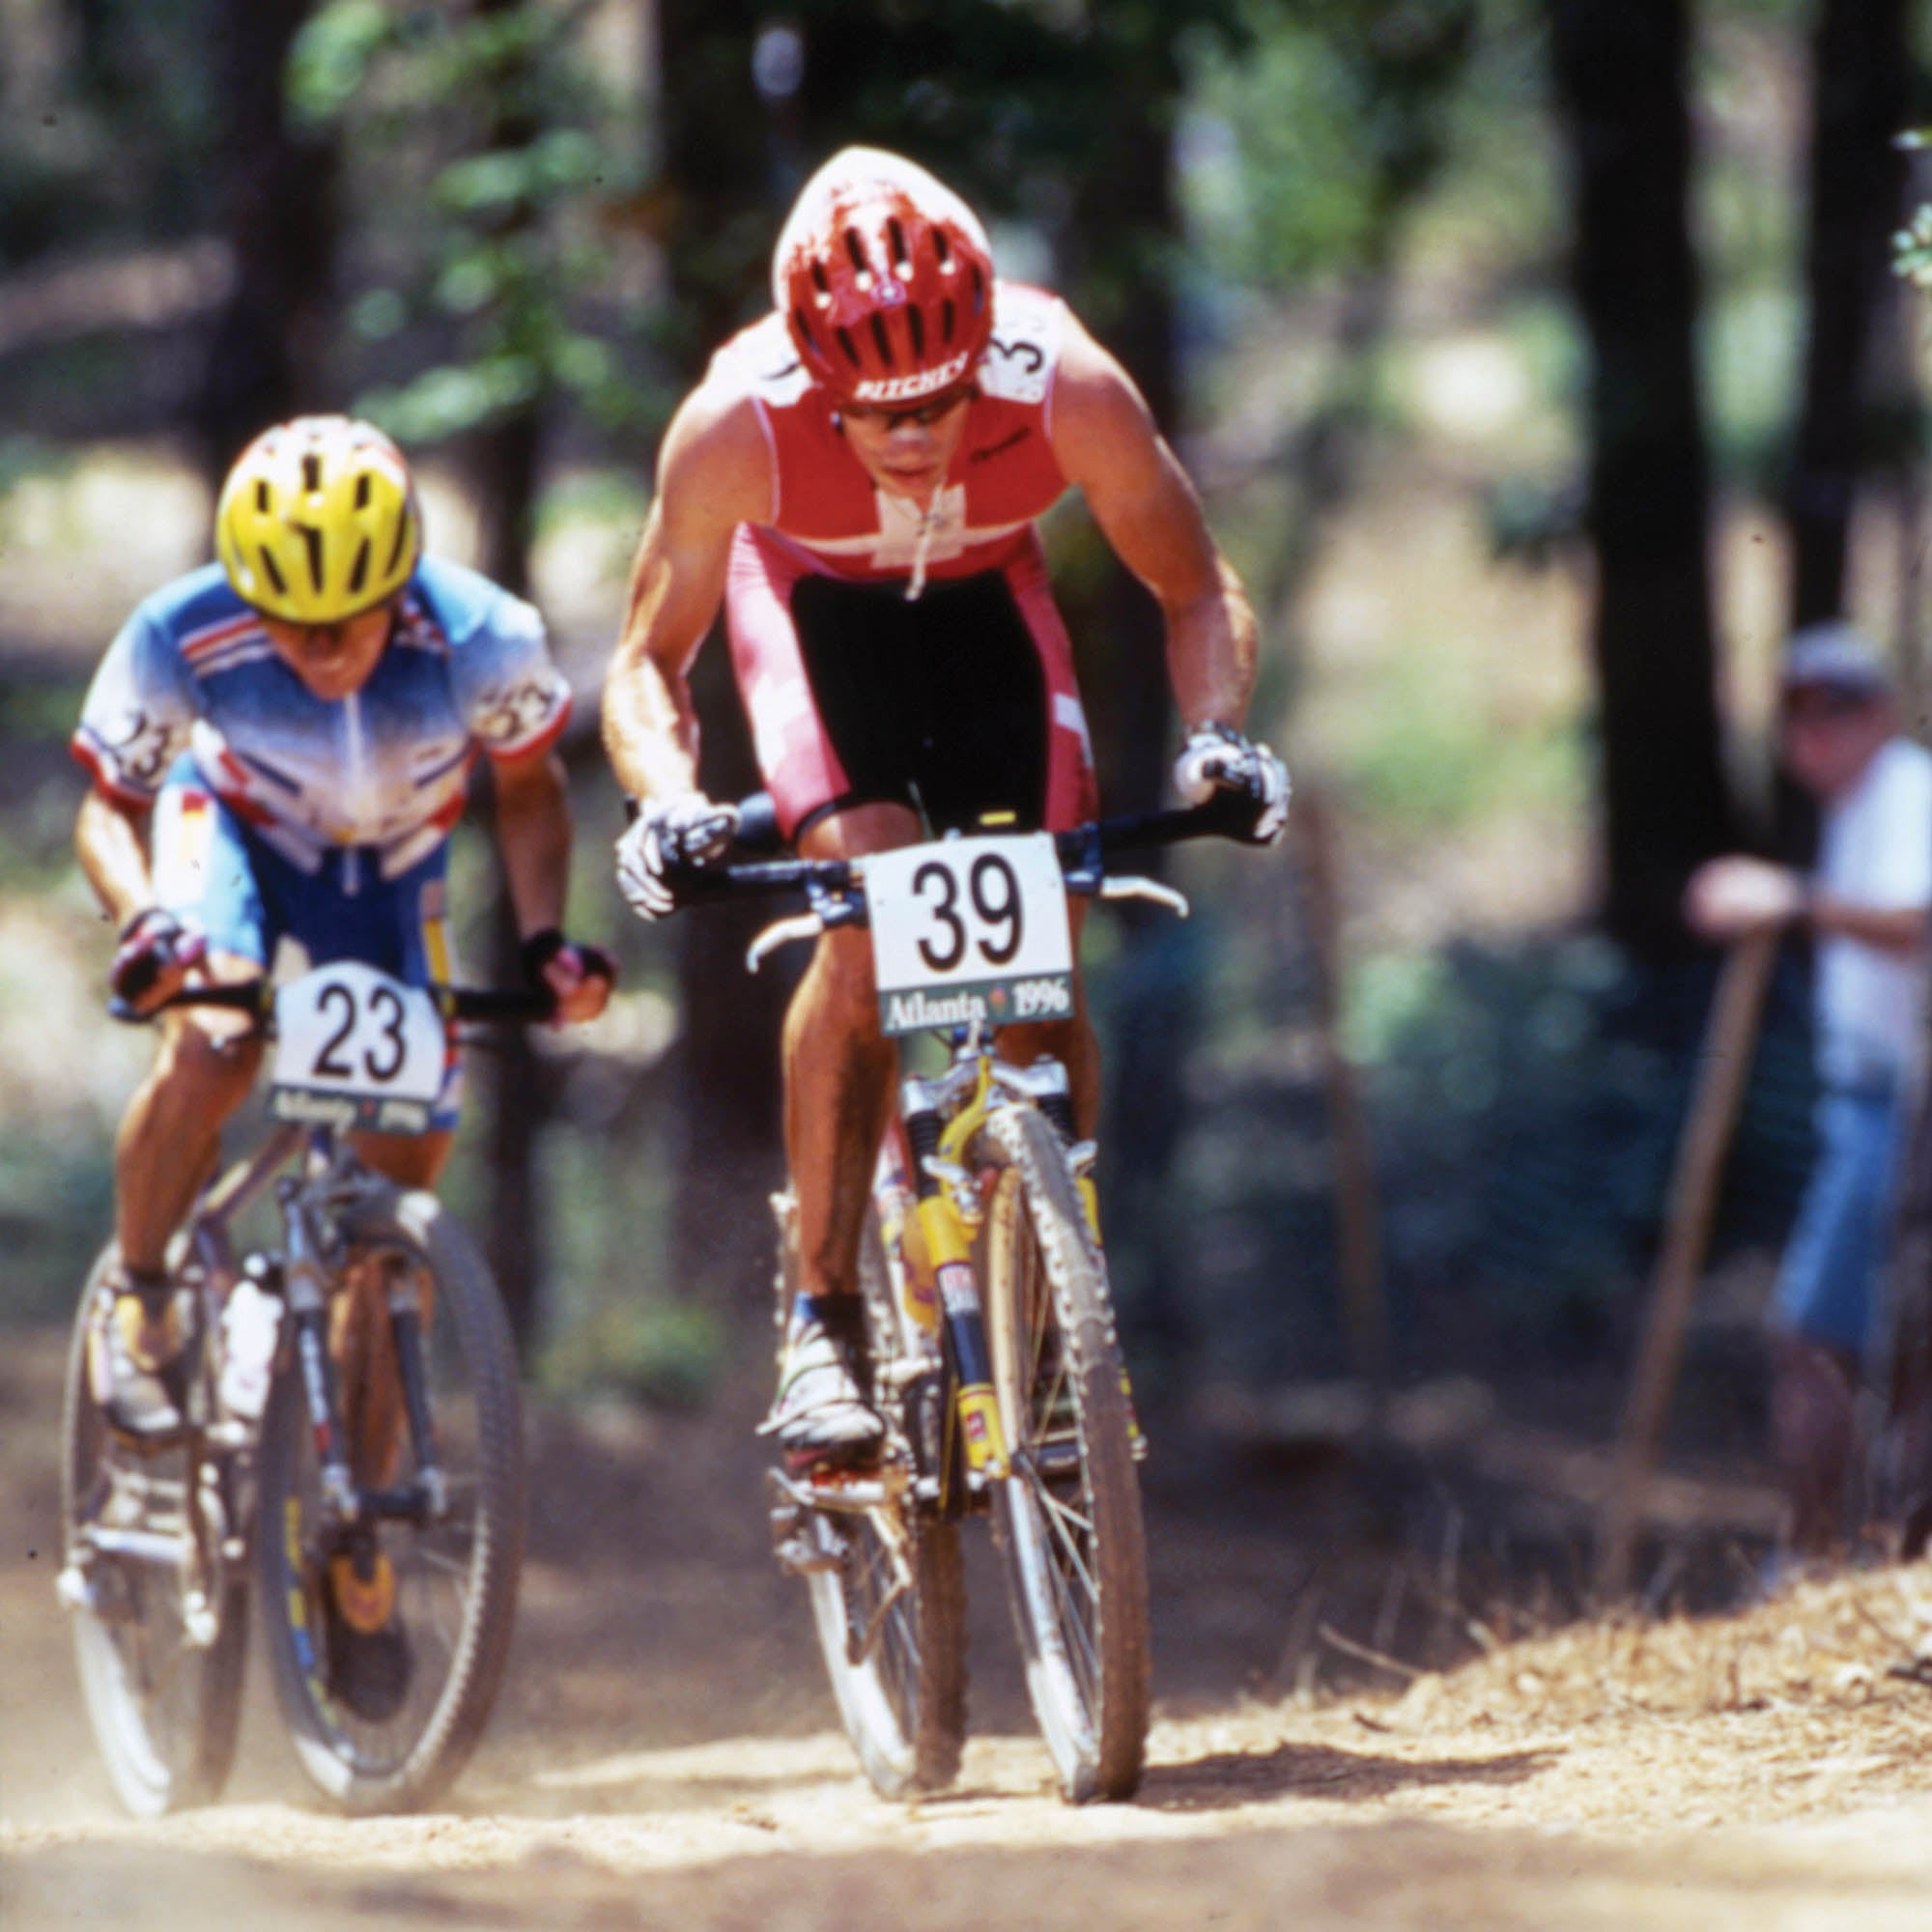 Frischknecht competing in mountain bike in the Olympics